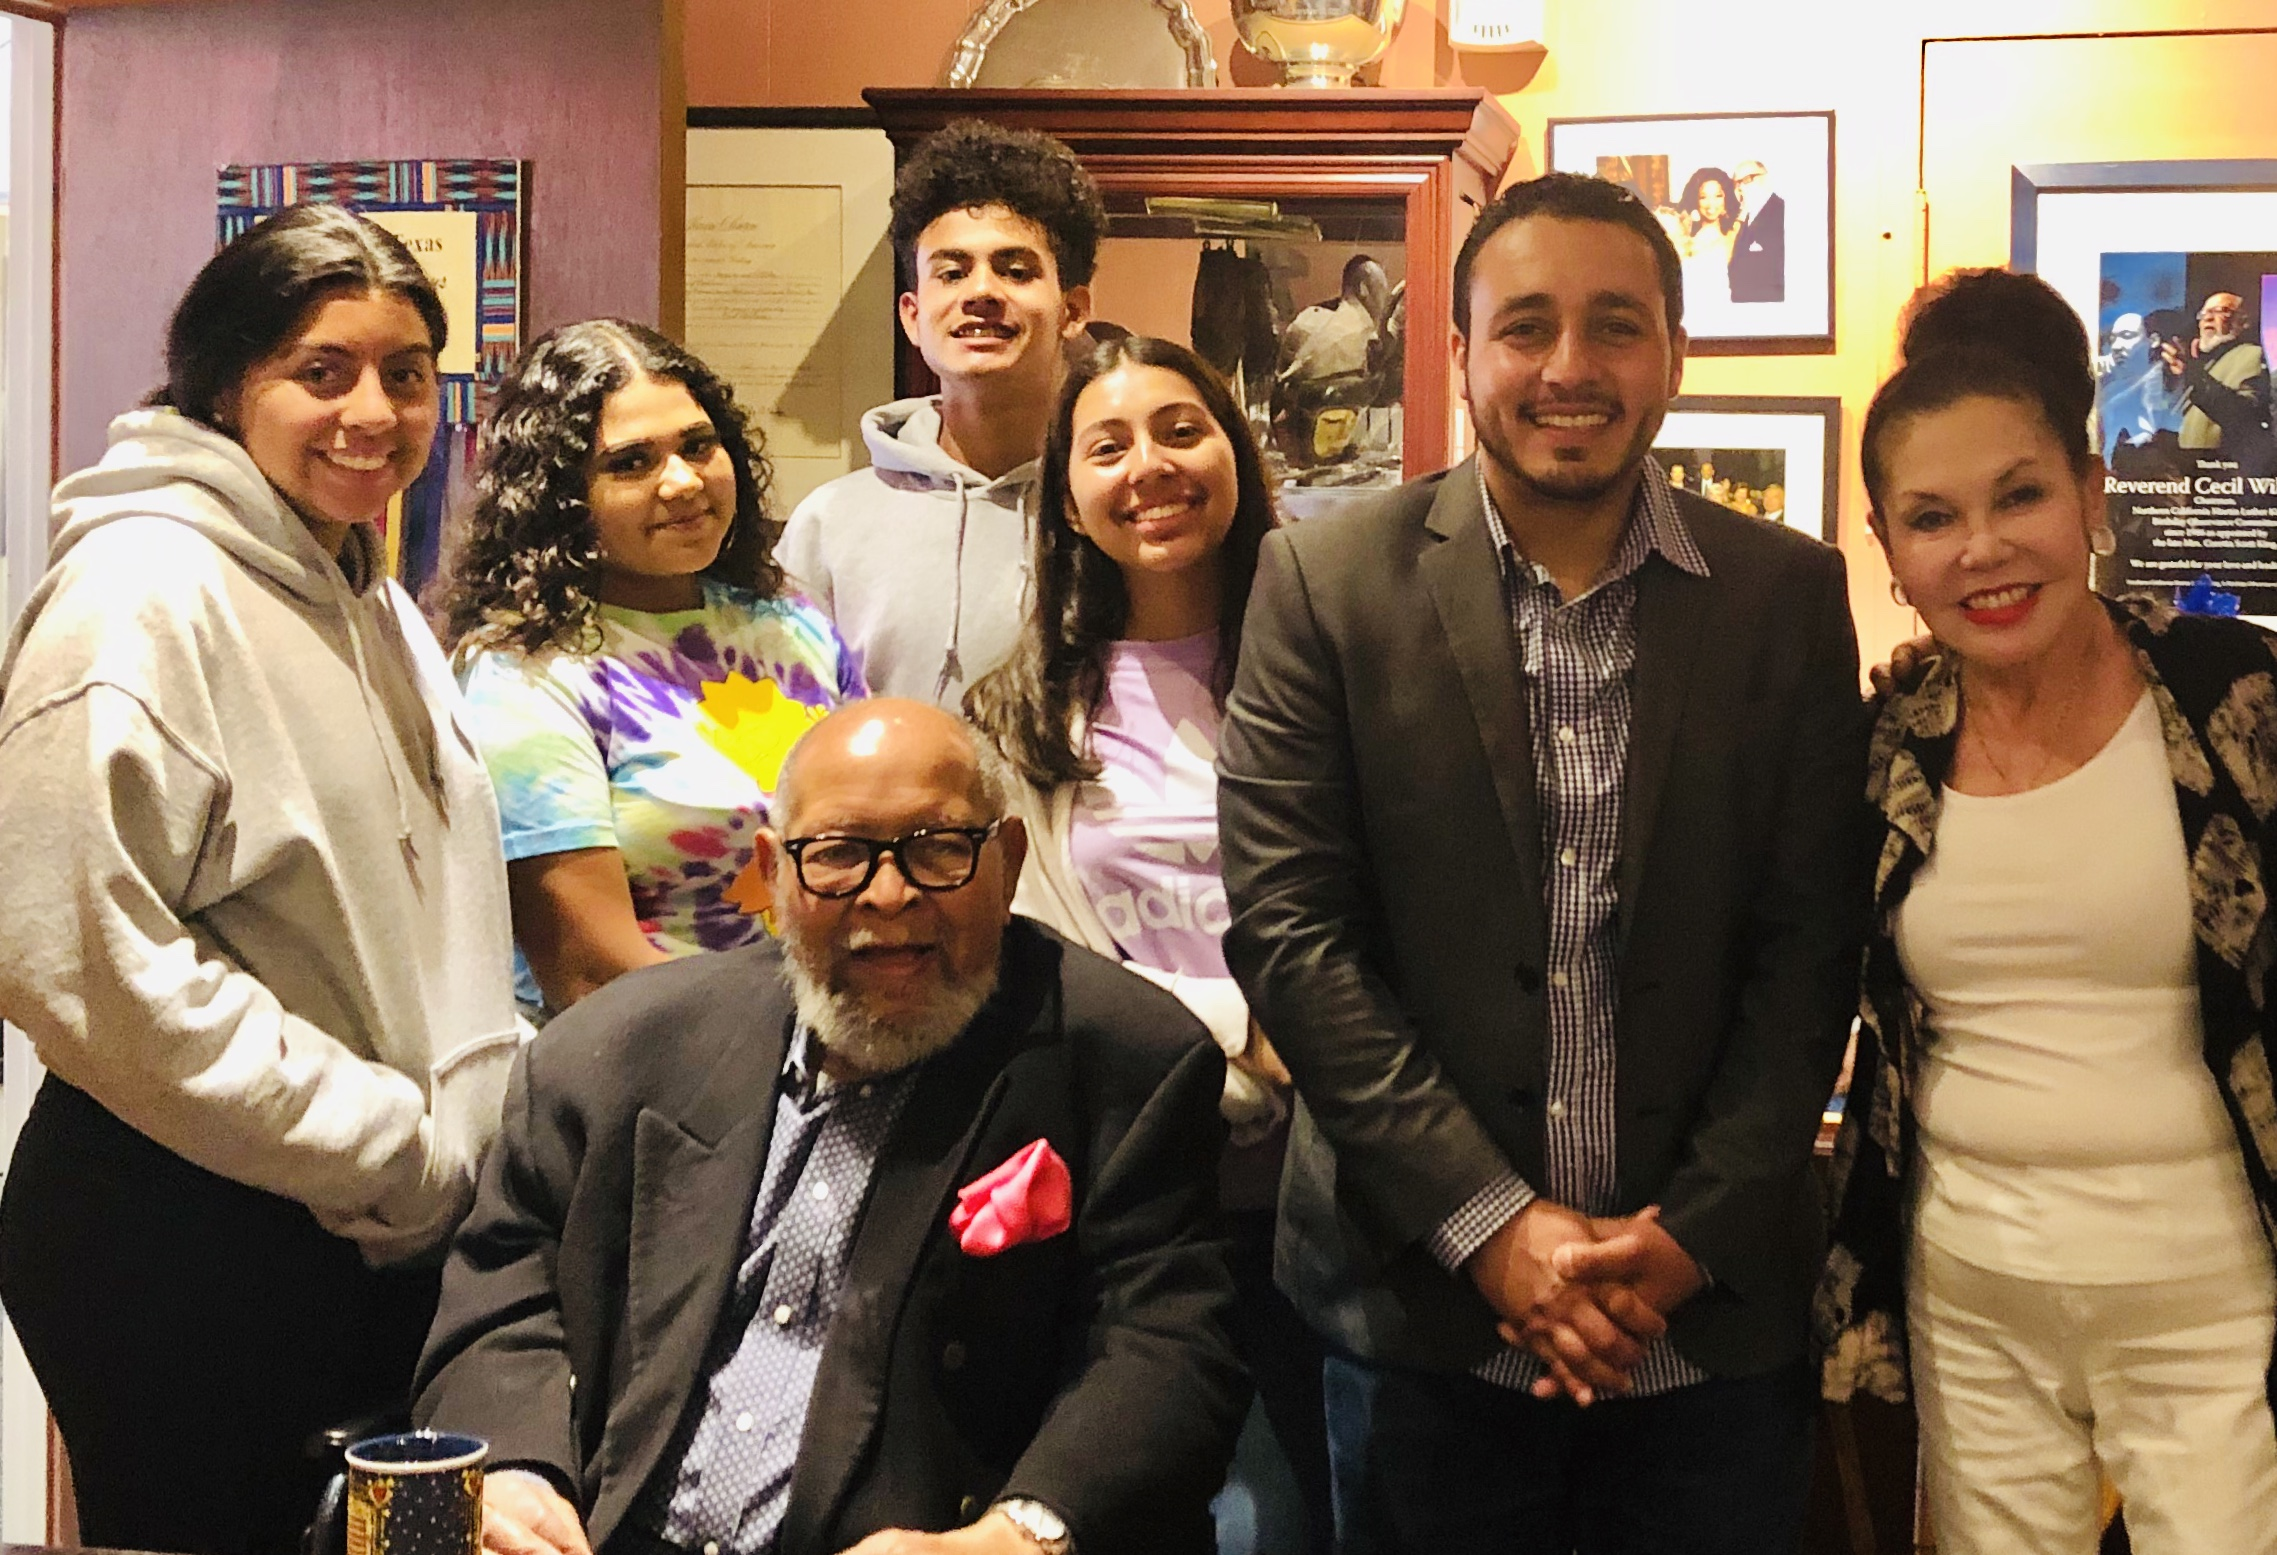 After volunteering, Youth In Charge members were honored to meet the GLIDE Co-Founders, Reverend Cecil Williams and Janice Mirikitani.